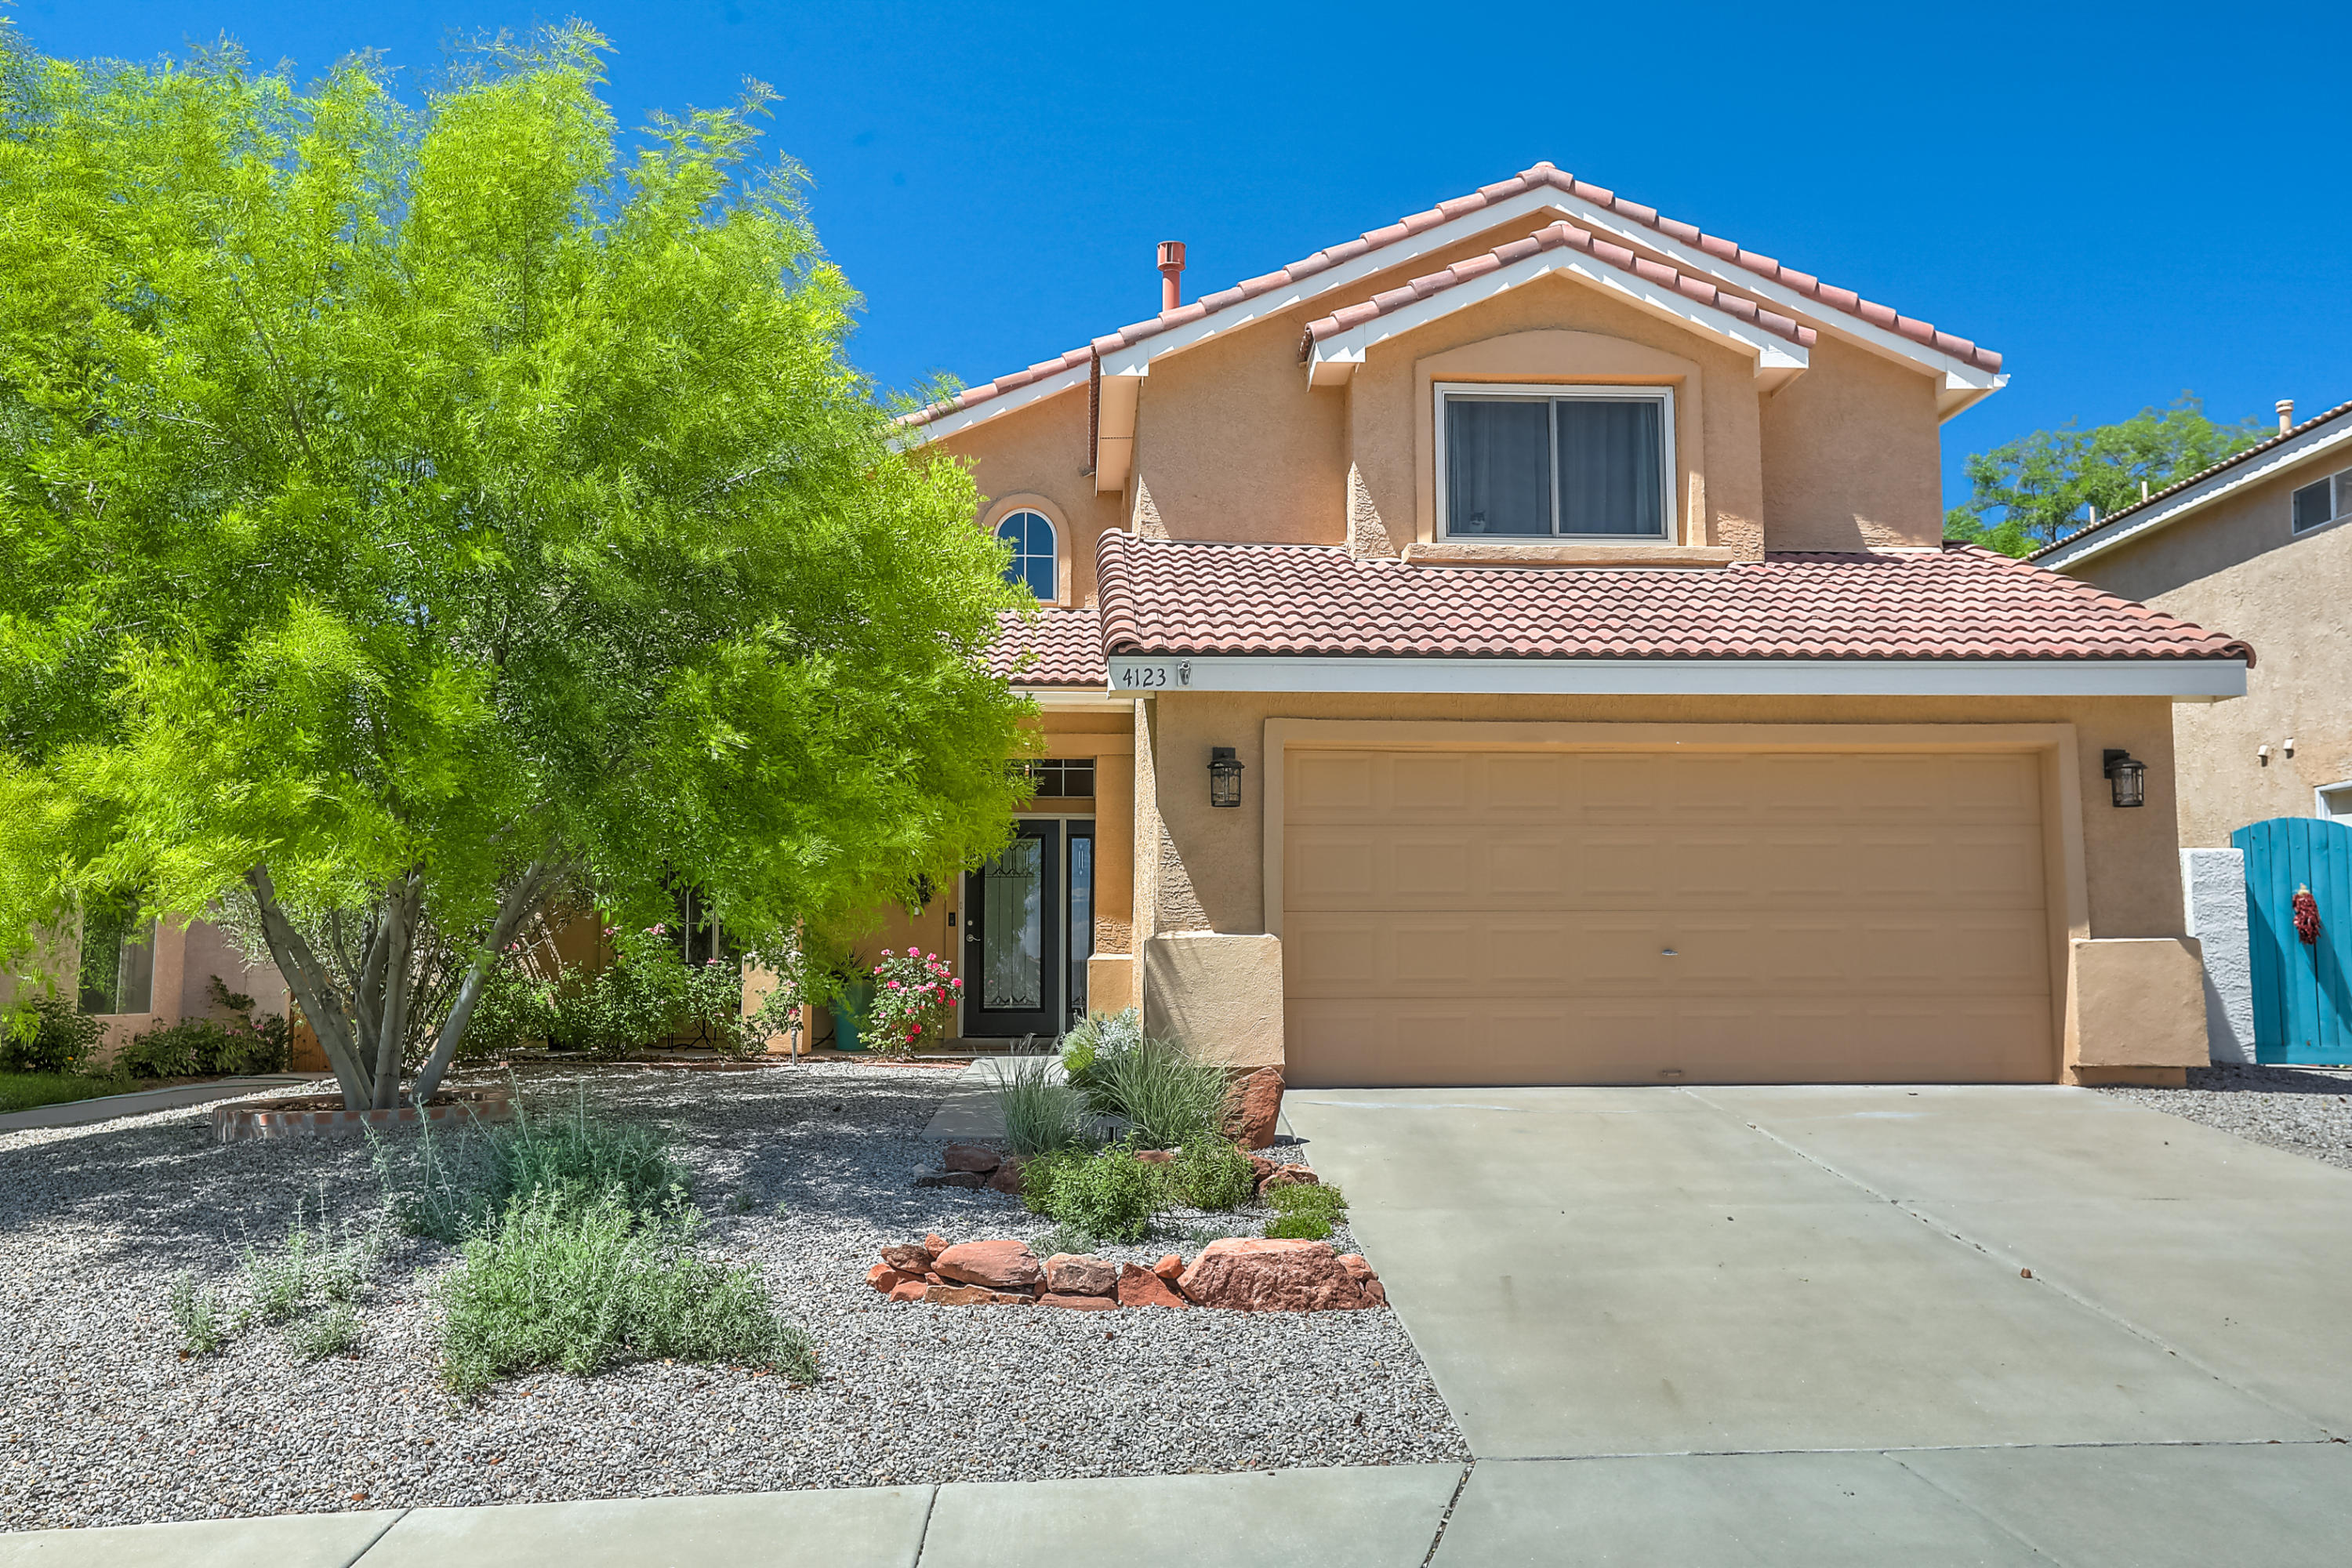 4123 MONTERA Place NW, Albuquerque, NM 87114 - Albuquerque, NM real estate listing